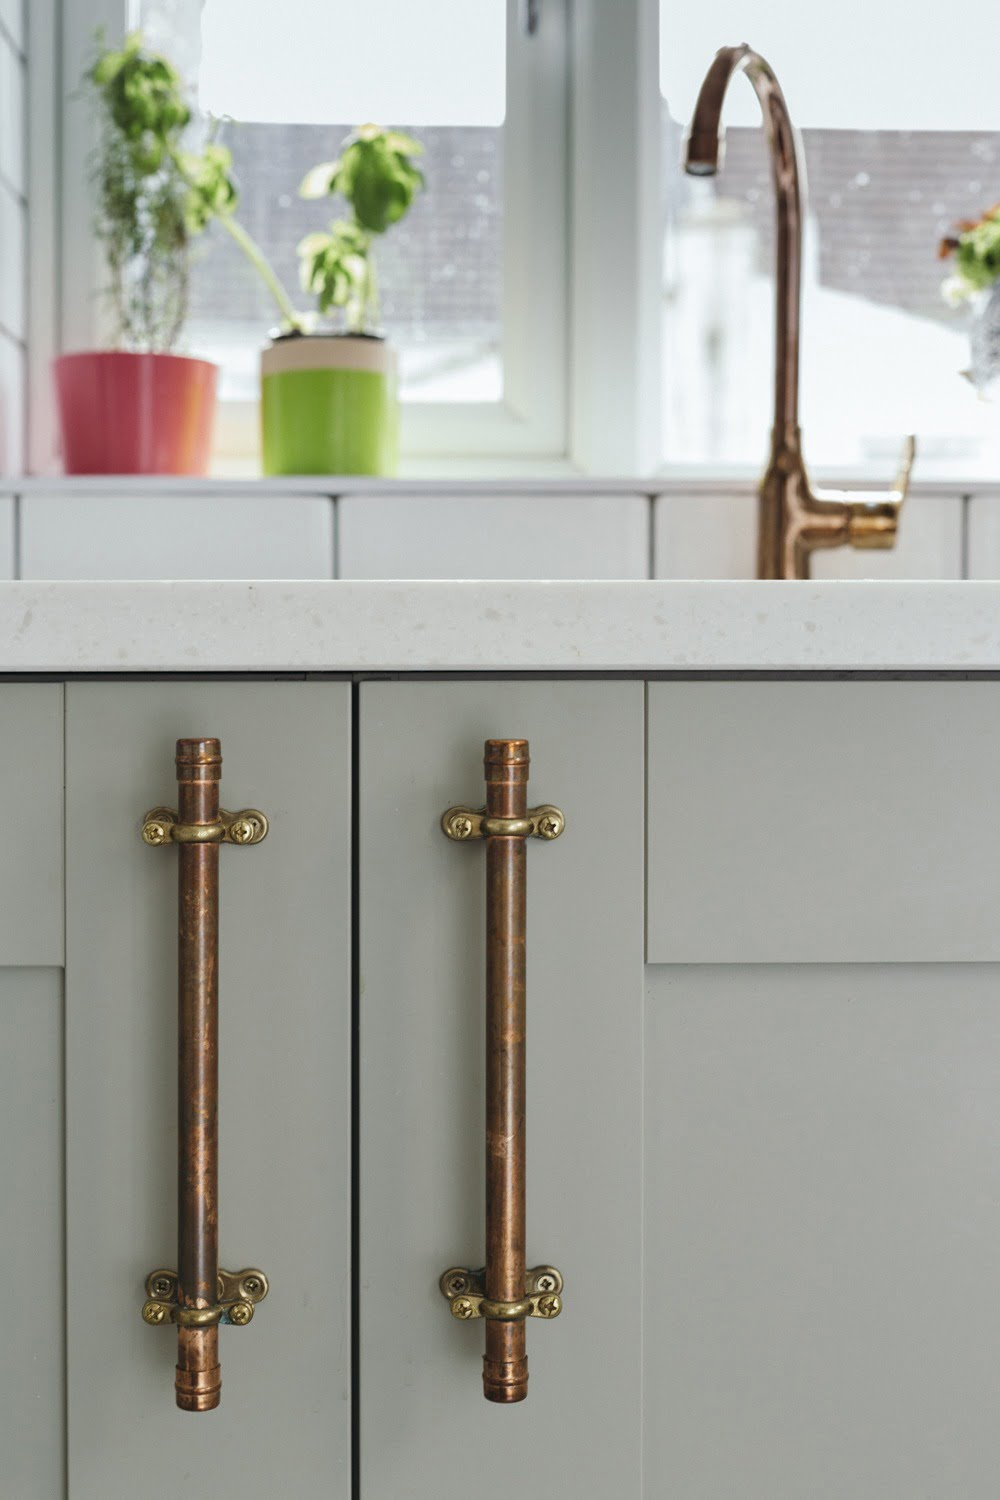 Top 10 Small Kitchen Planning ideas from WeLoveHomeBlog.com